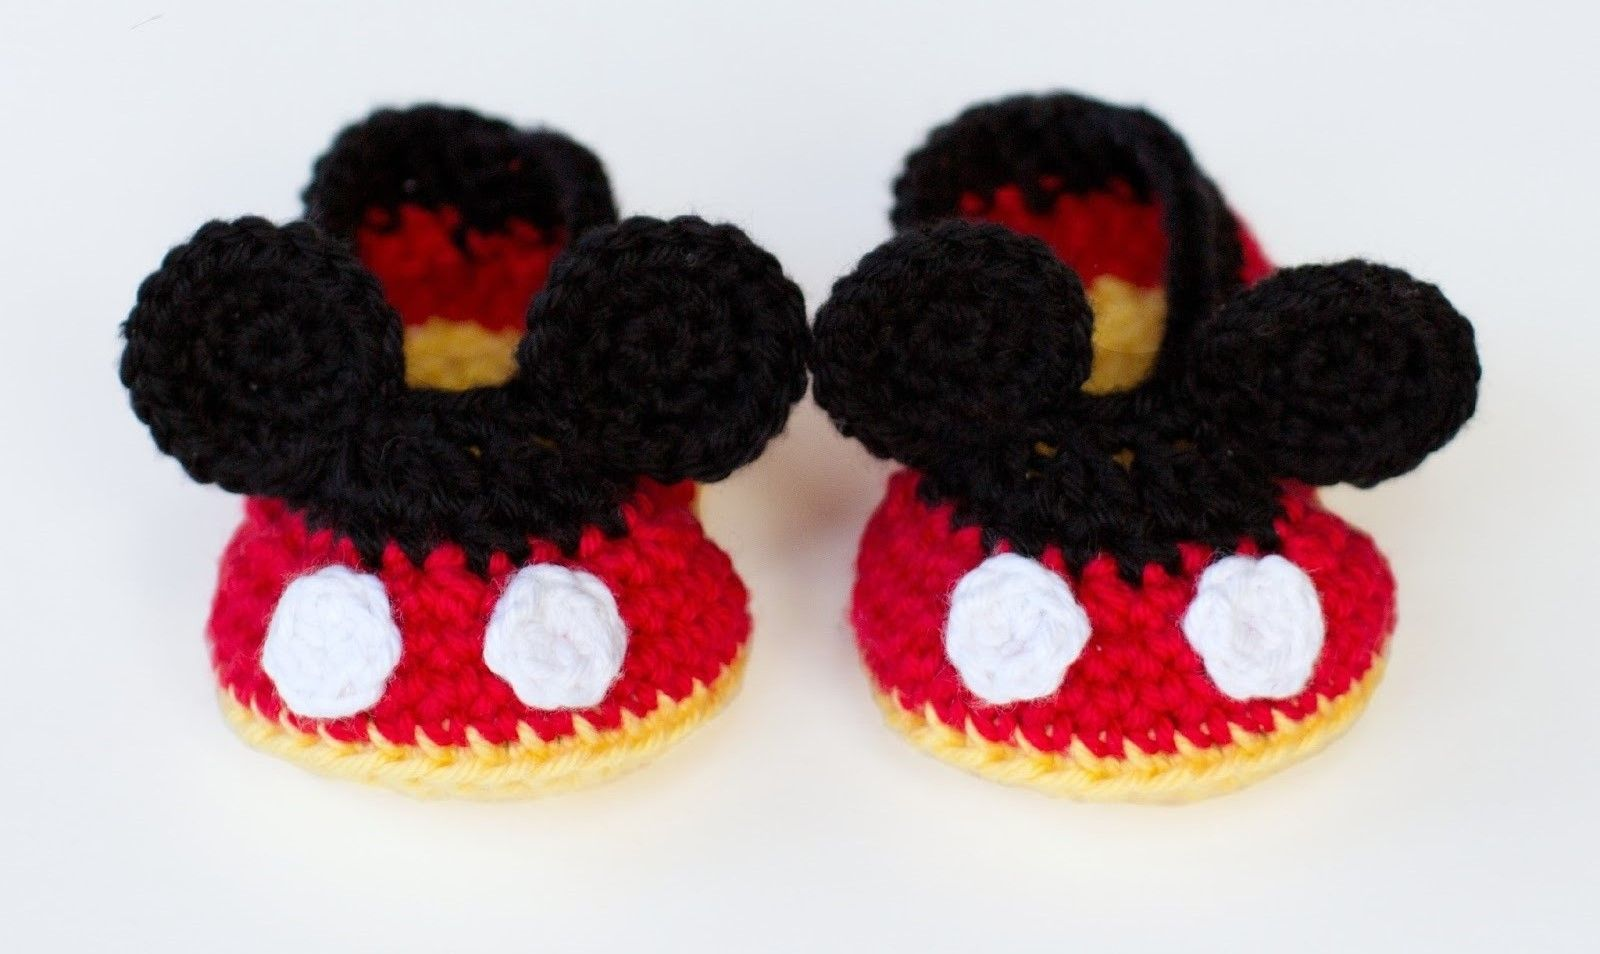 Mickey mouse crochet shoes for babies - Crochet Free | Crochet Free ...